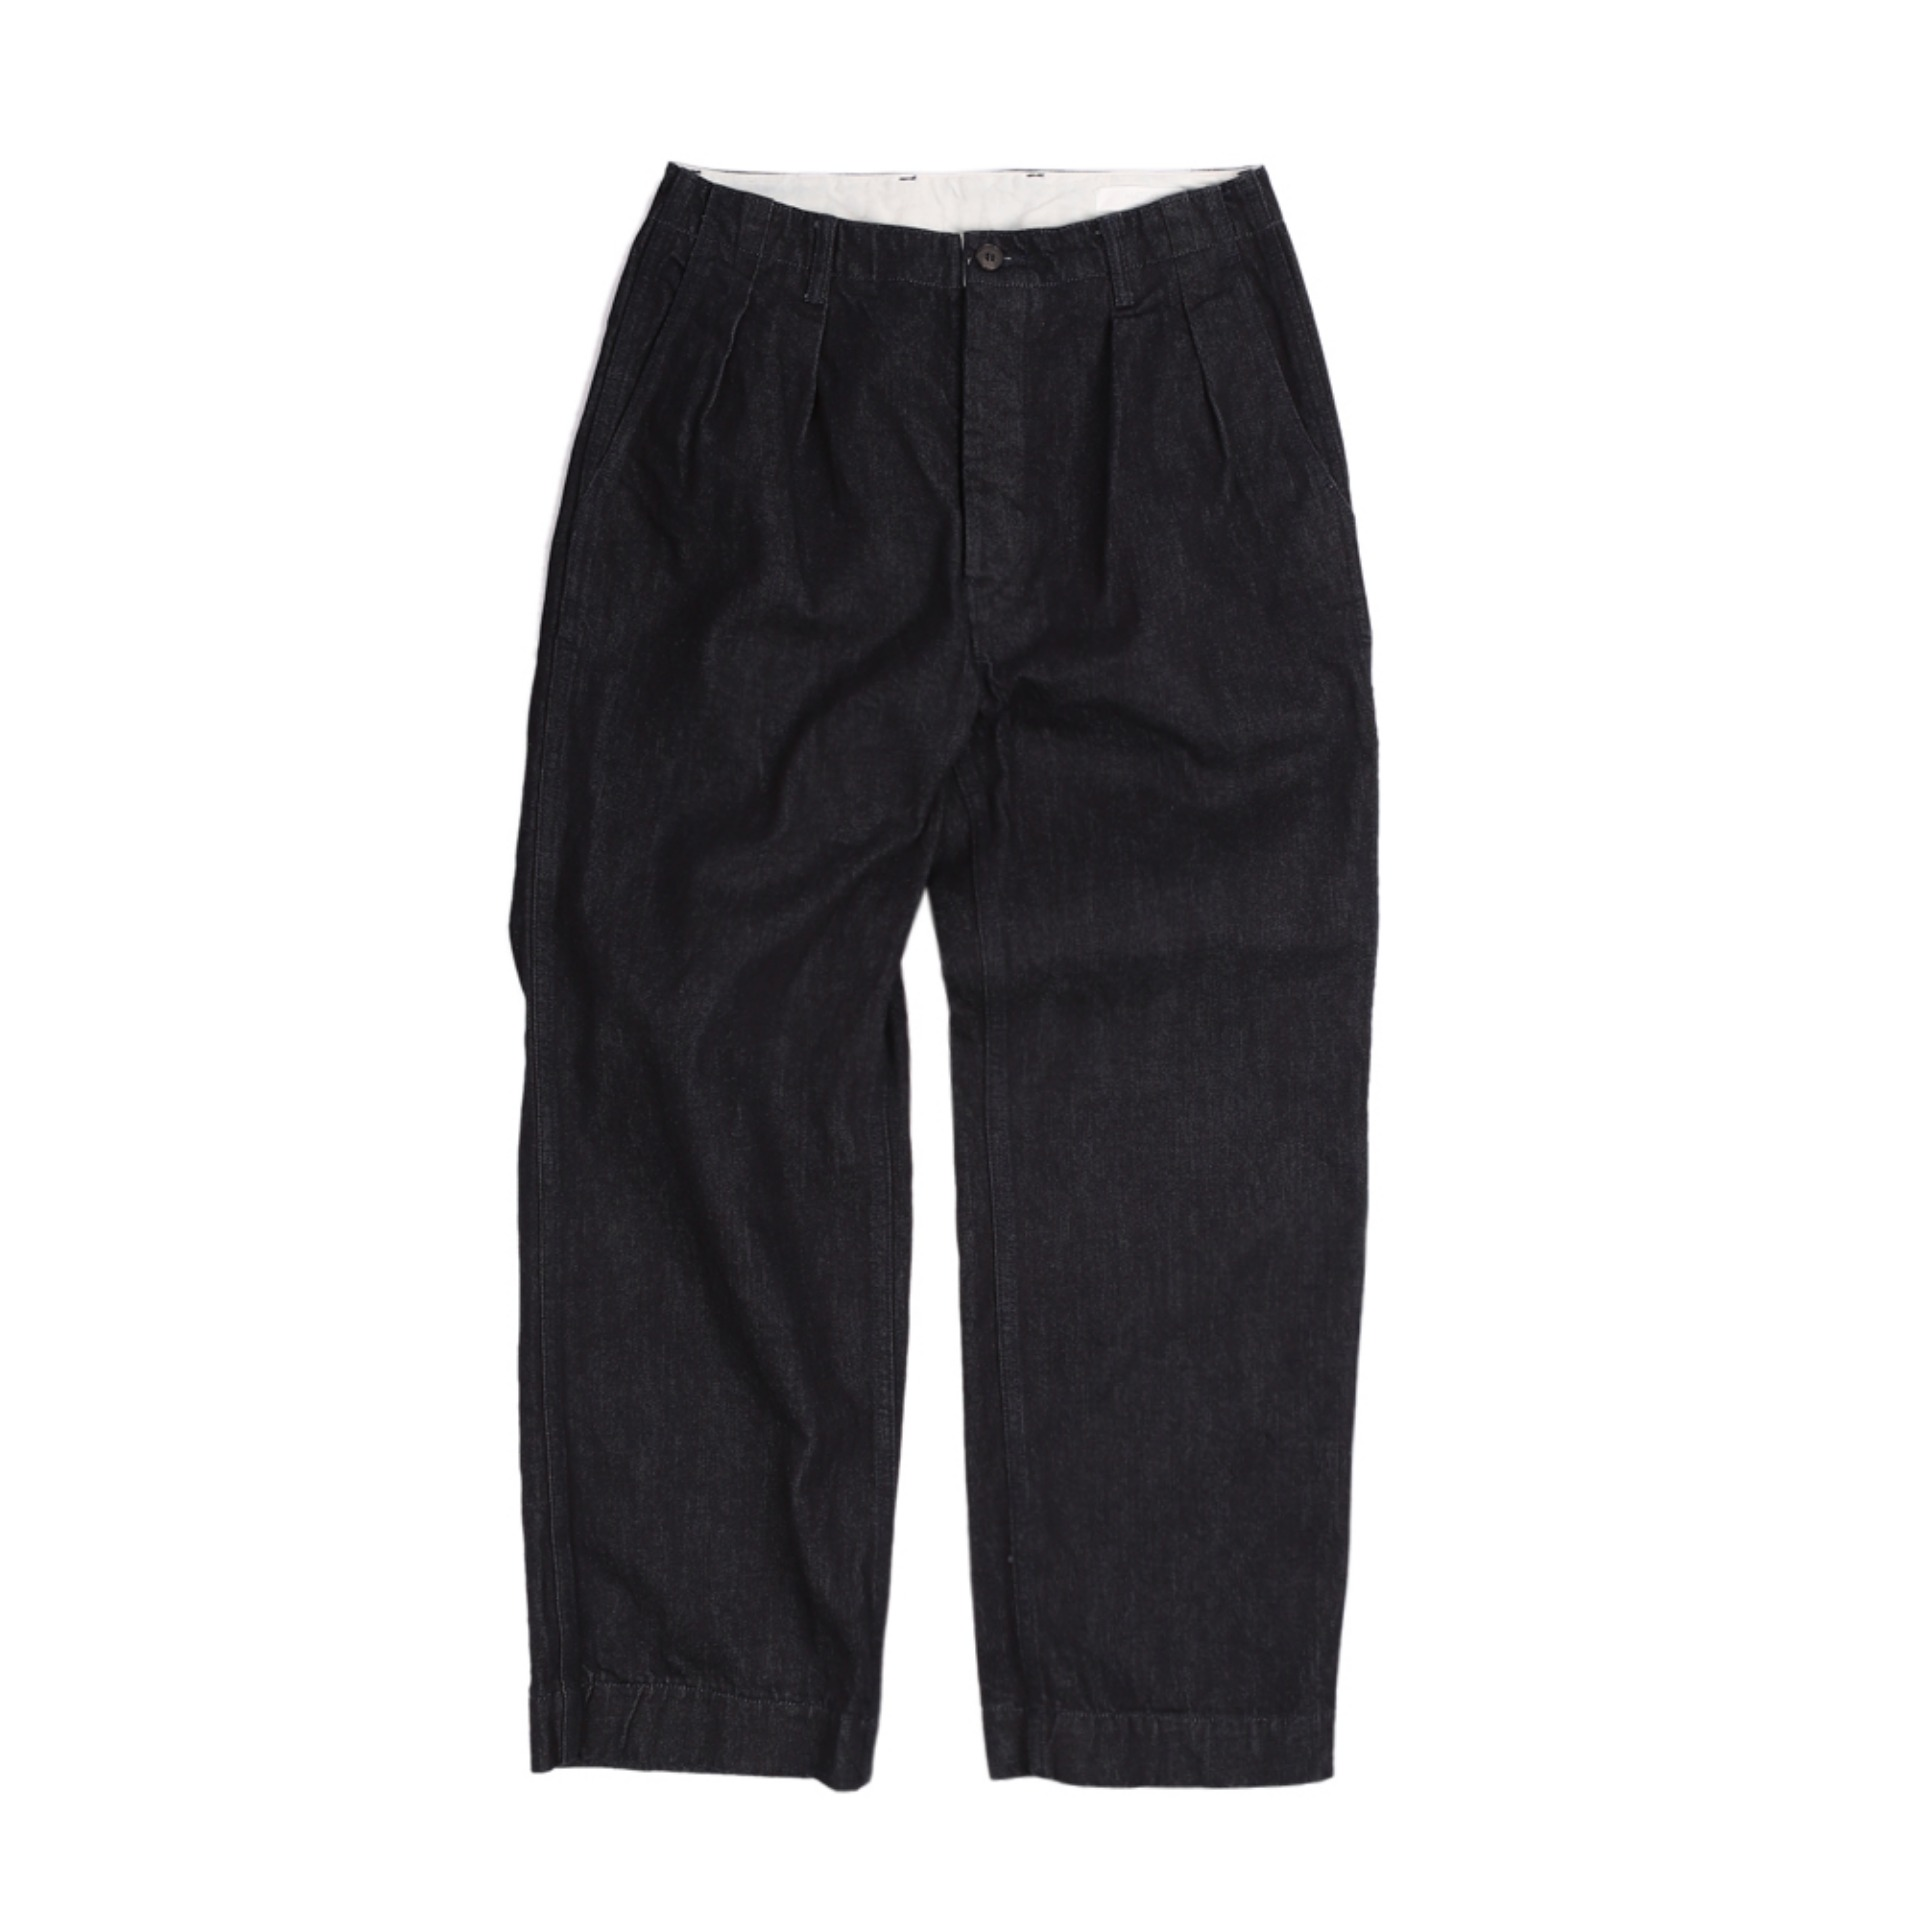 HATSKI 2TUCK DENIM TROUSER(ONE WASH)